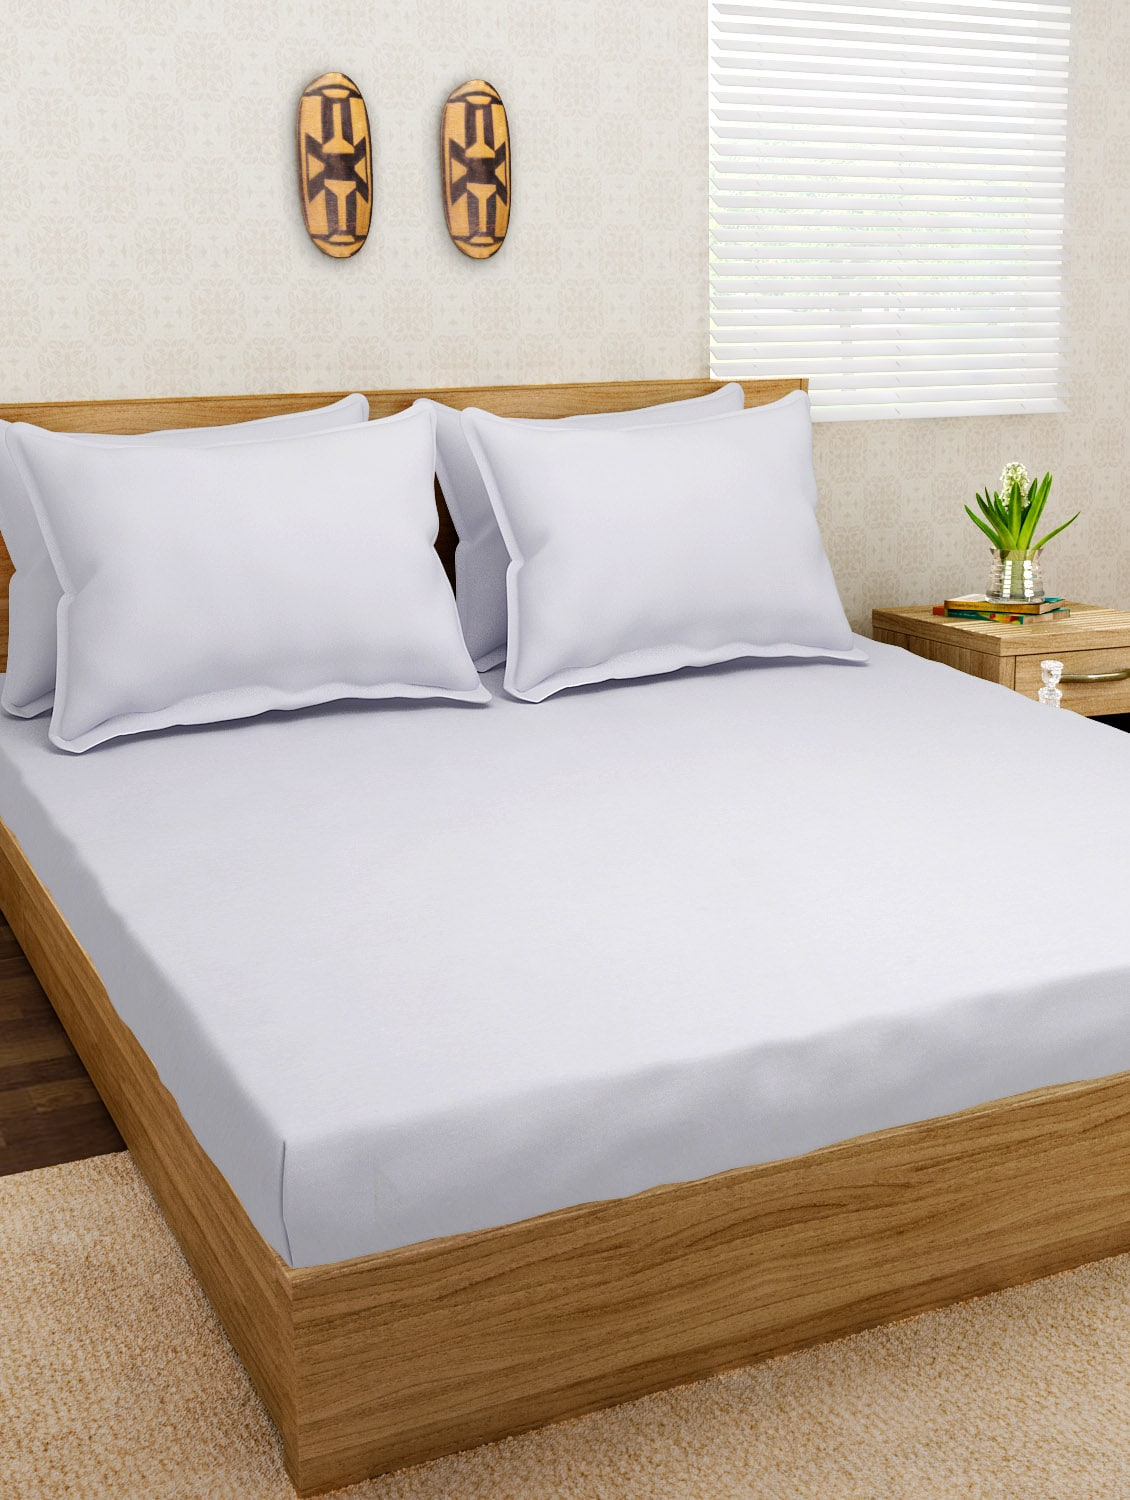 High Quality Buy Jersey Dreams White Knit Fitted Bedsheet Set By Jersey Dreams   Online  Shopping For Bed Sheet Sets In India | 10148566